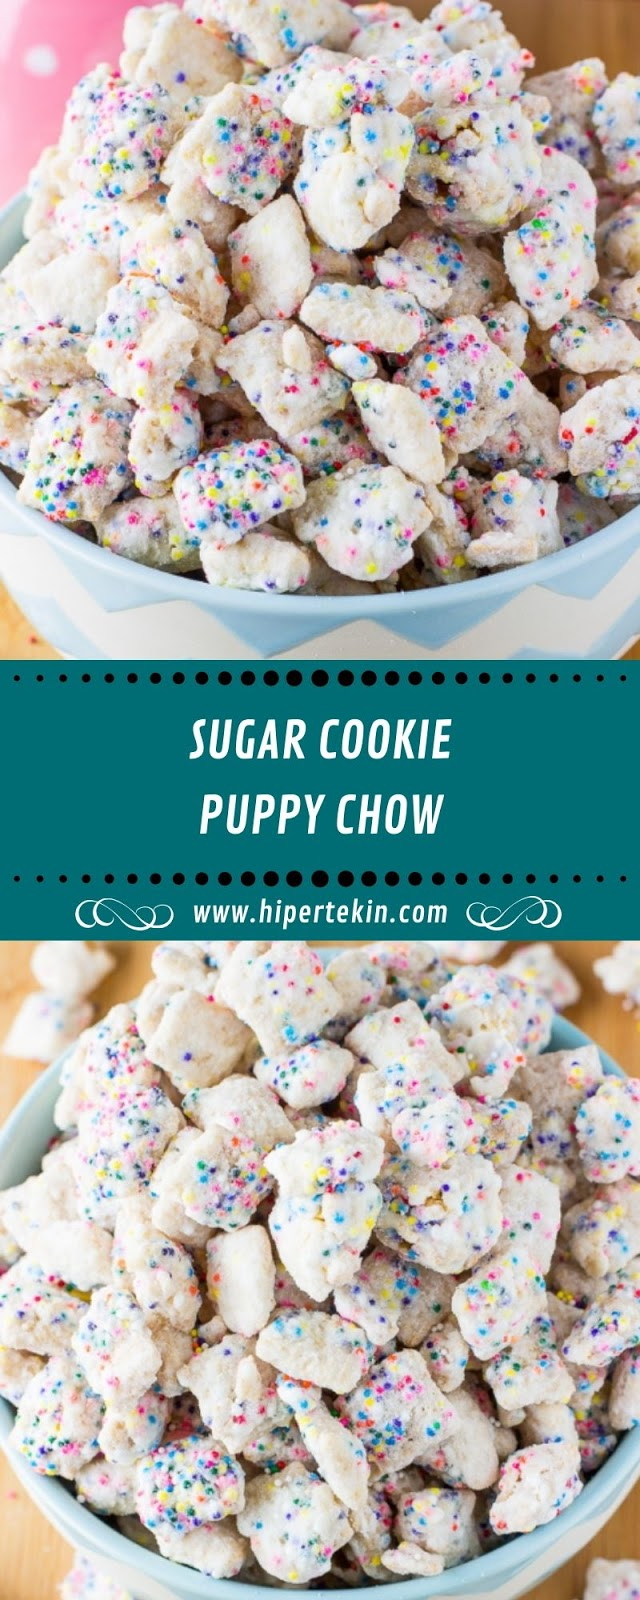 SUGAR COOKIE PUPPY CHOW